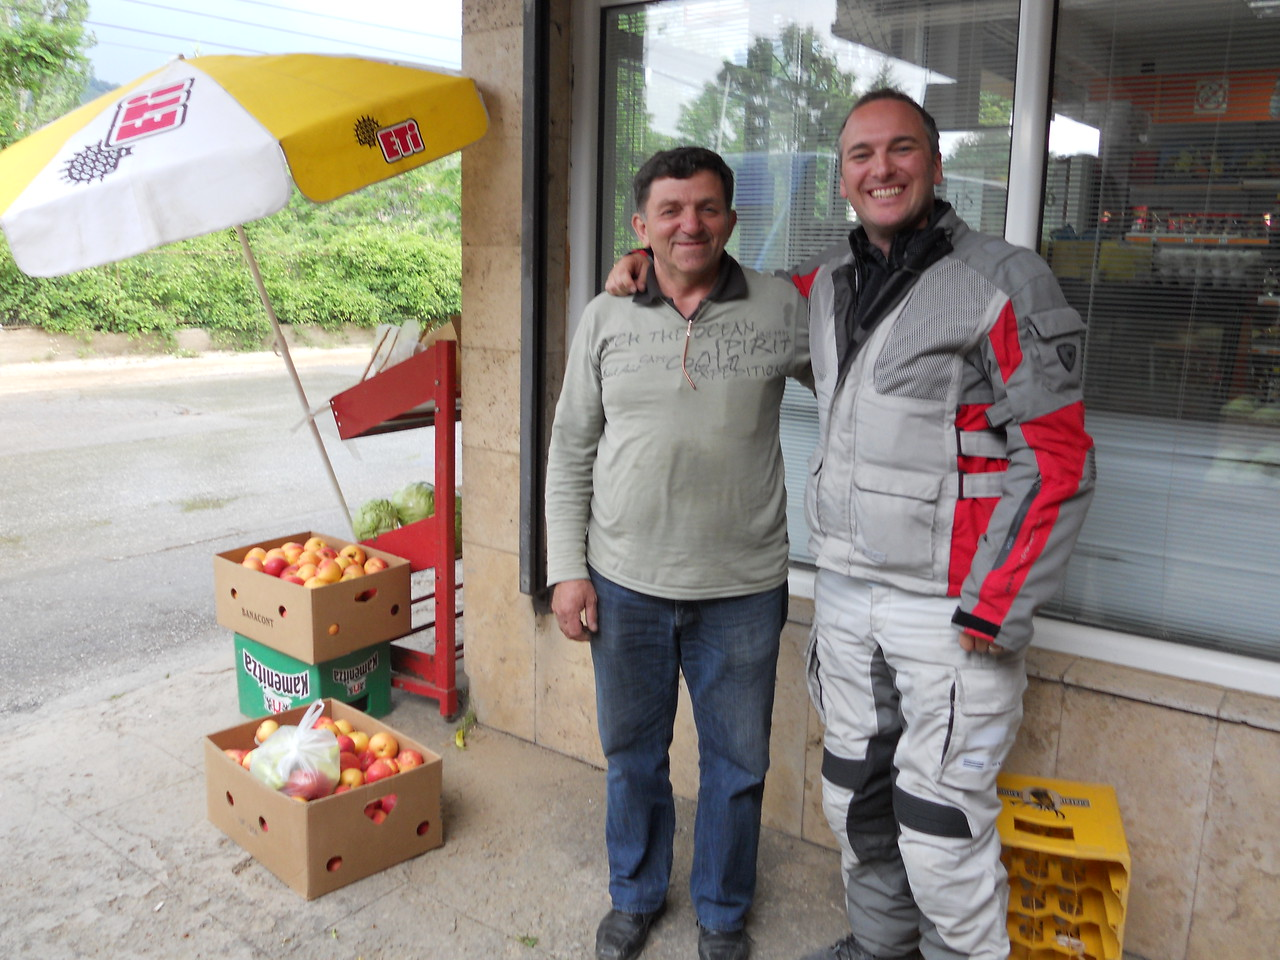 We reach Kriva Palanka but have no idea where the monastery (tonight's accomodation!) is. This friendly shop keeper invites us for a Turkish coffees, plies us with free vegetables and offers us a place to stay with his family in case the monestary is closed!